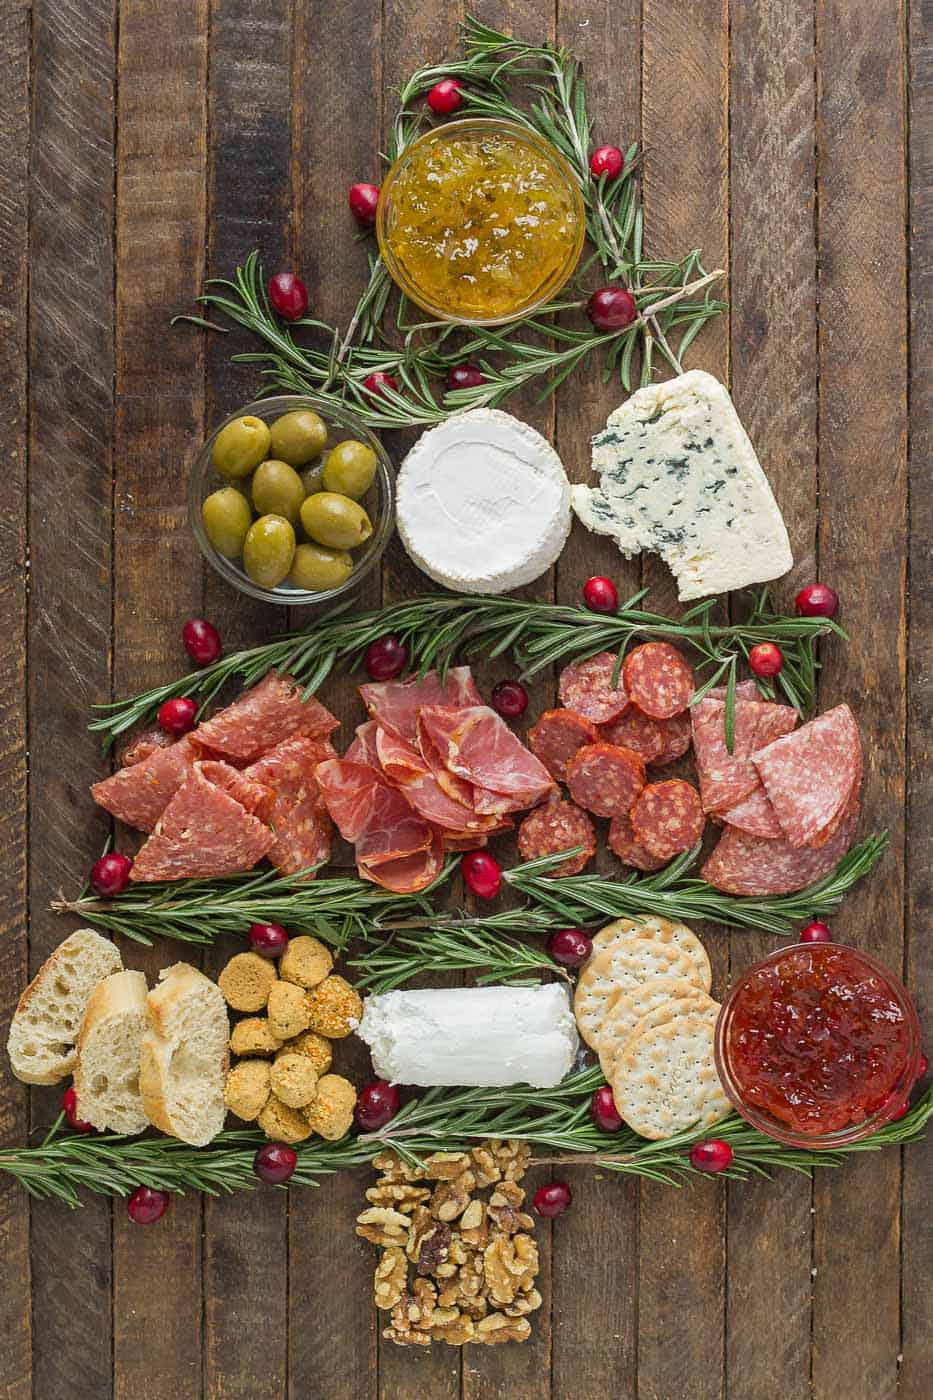 Impress your guests with this Christmas Tree Charcuterie filled with gourmet cheeses, meats and crackers.  The perfect way to start any holiday or cocktail party this season and don't forget the wine! | Strawberry Blondie Kitchen